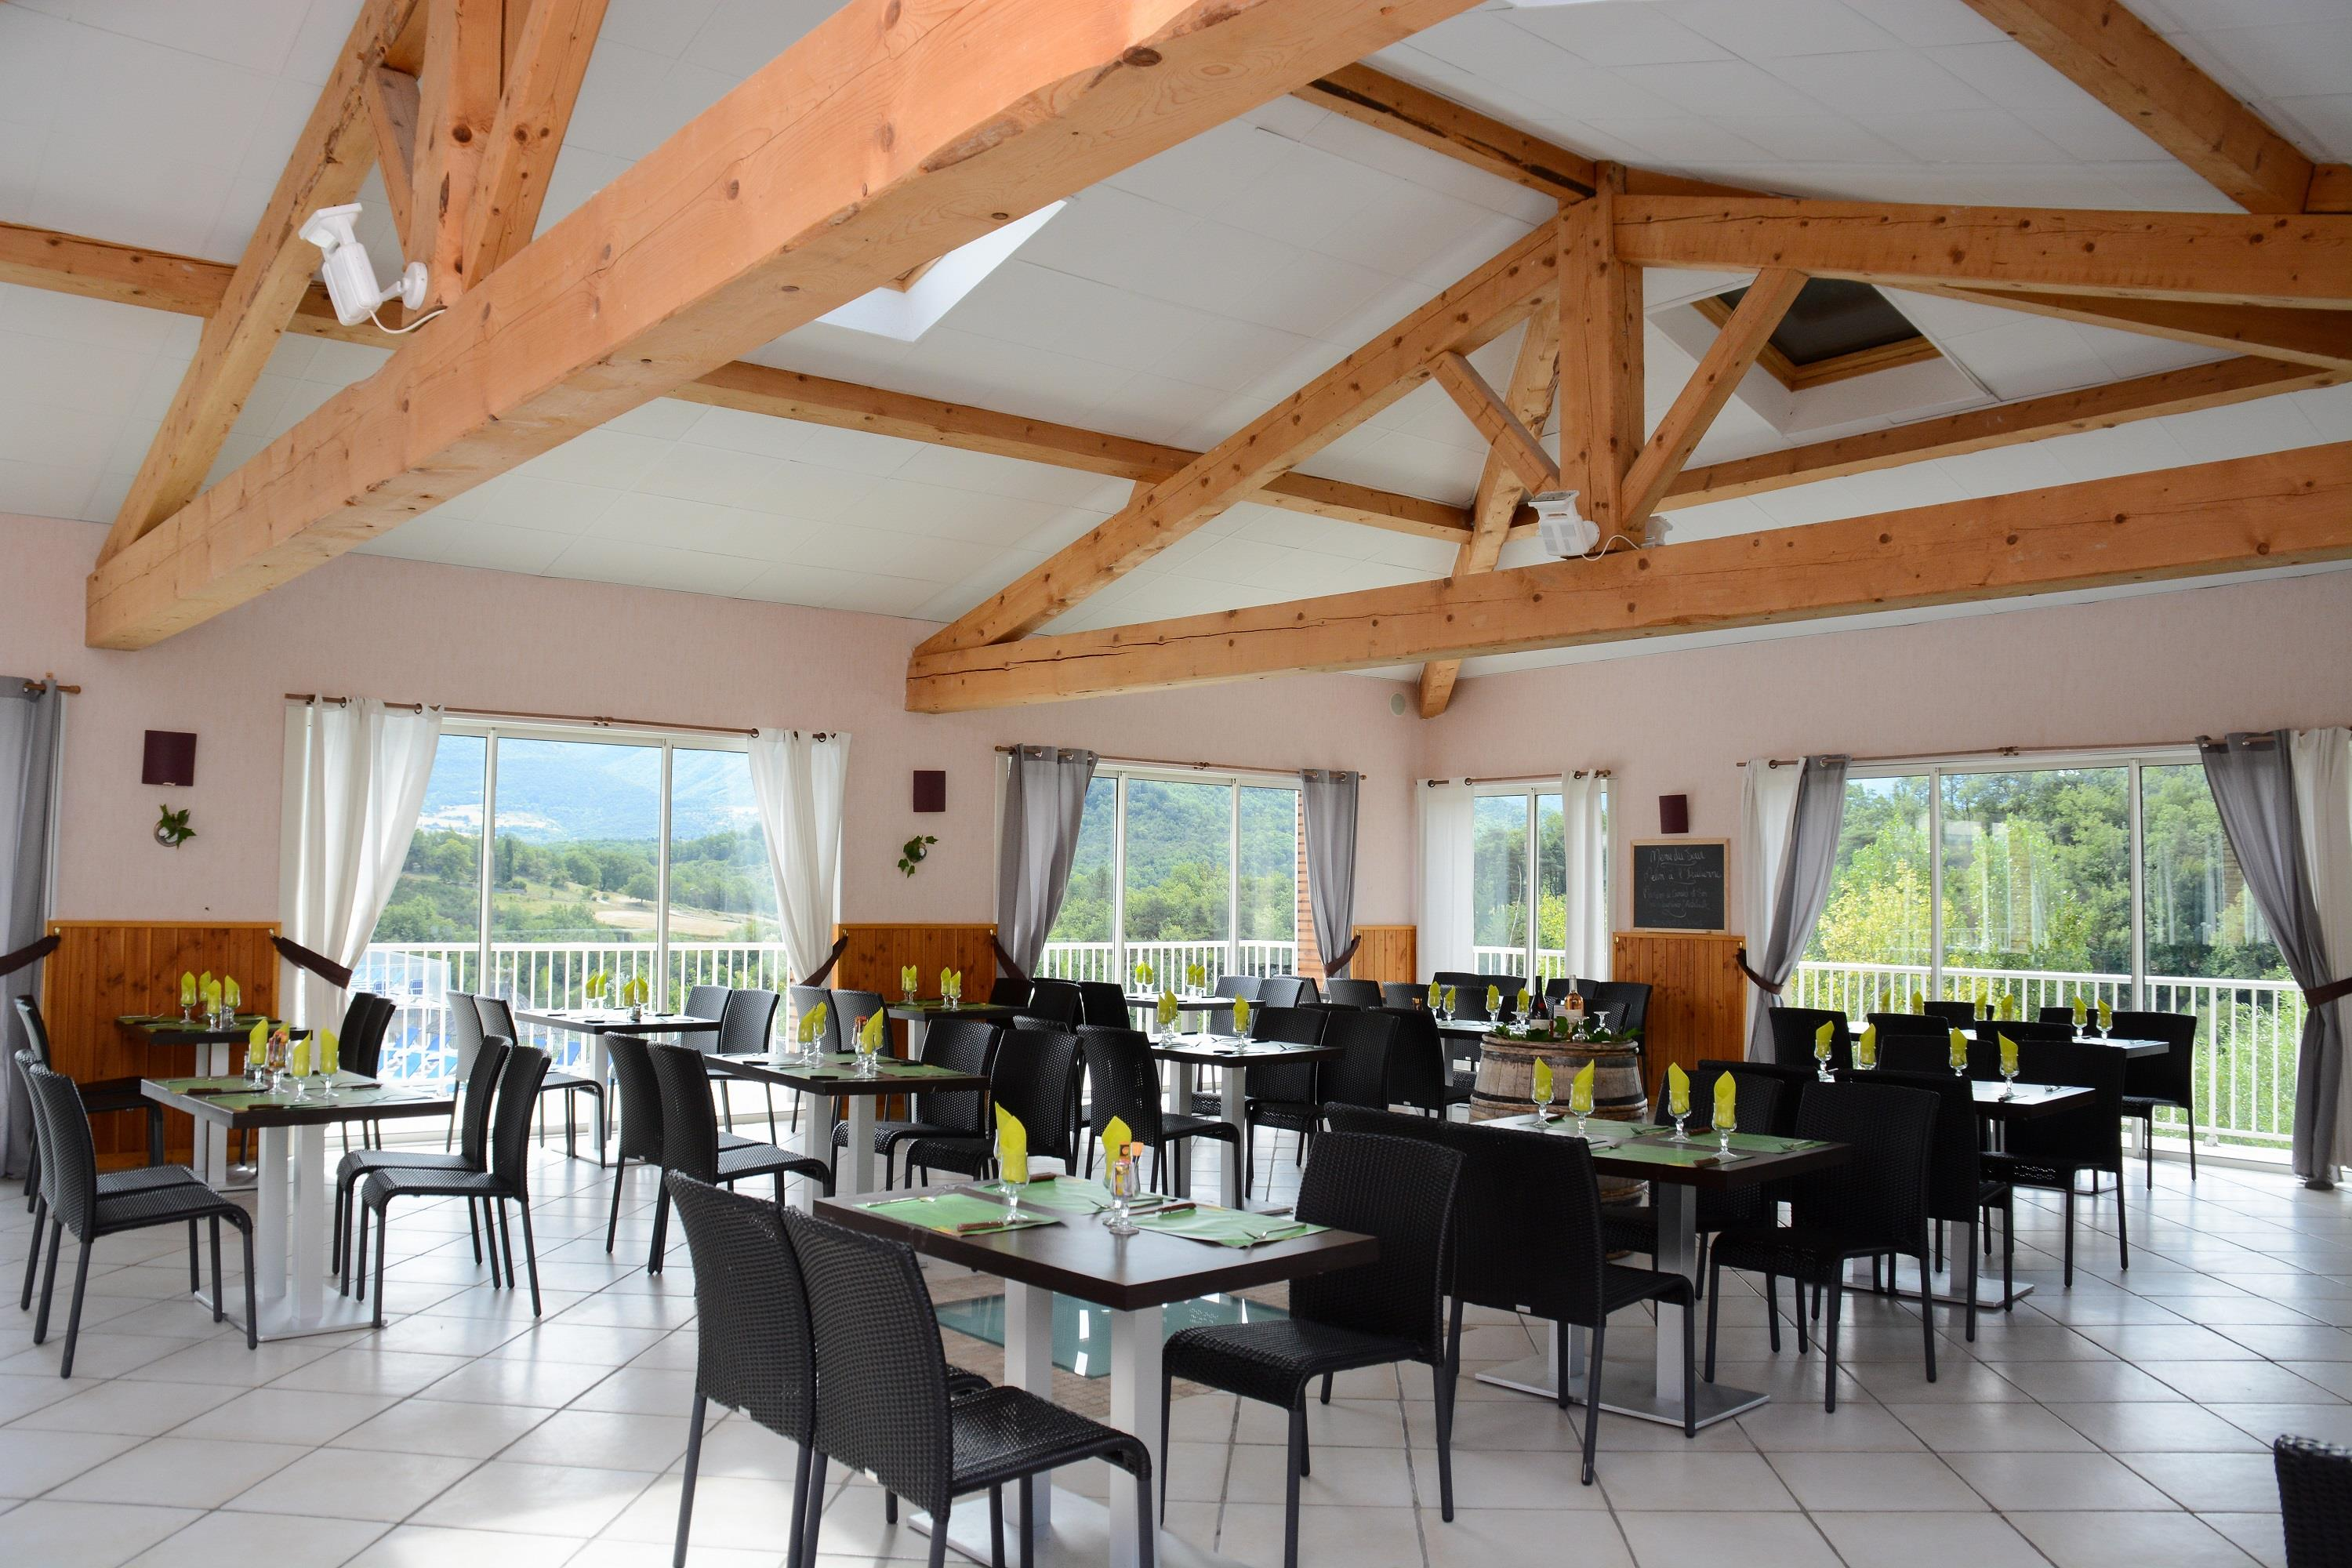 Services & amenities Yelloh! Village - Les Bois Du Chatelas - Bourdeaux